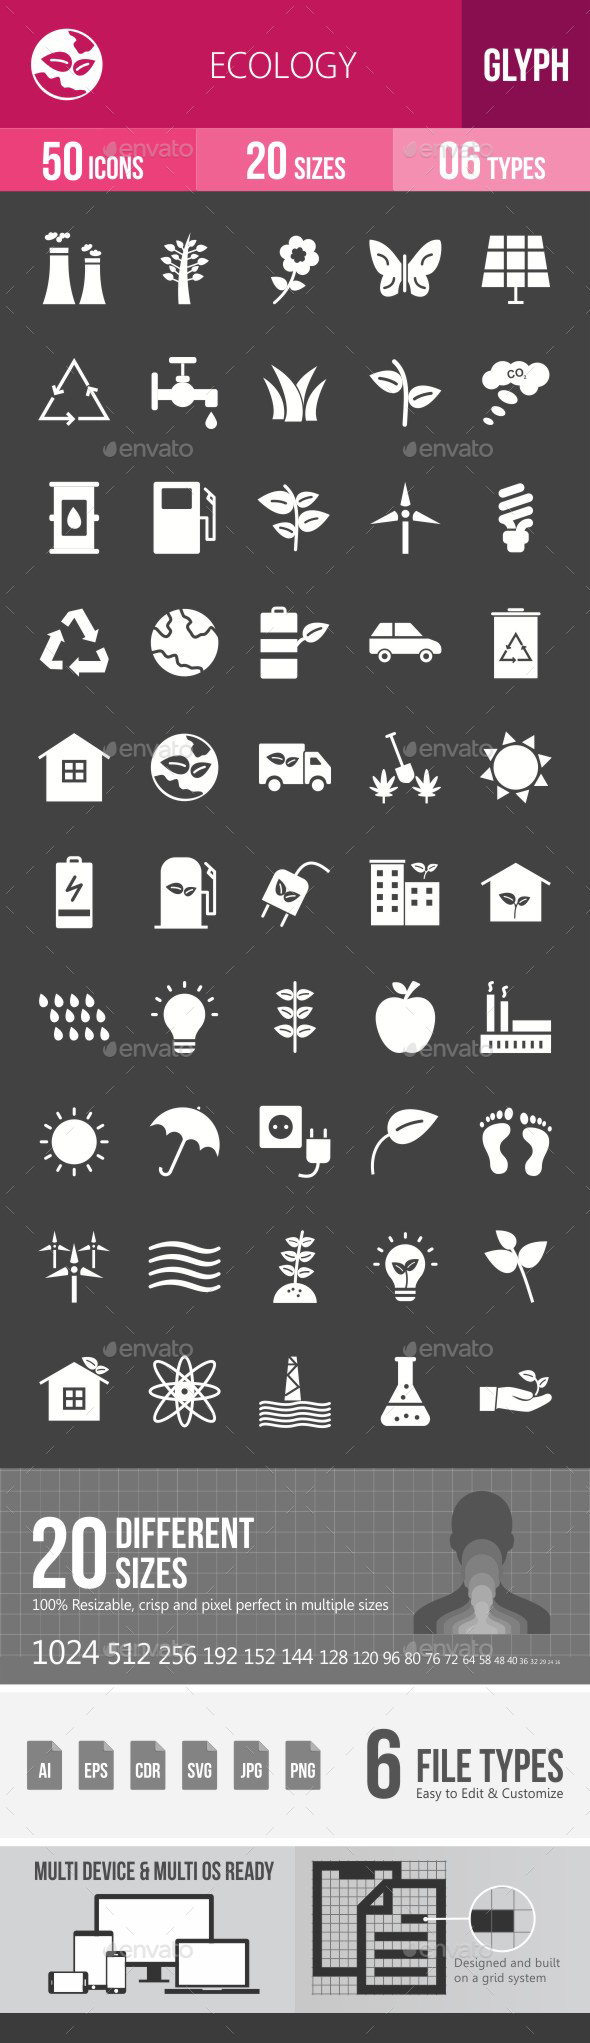 Ecology Glyph Inverted Icons - Icons